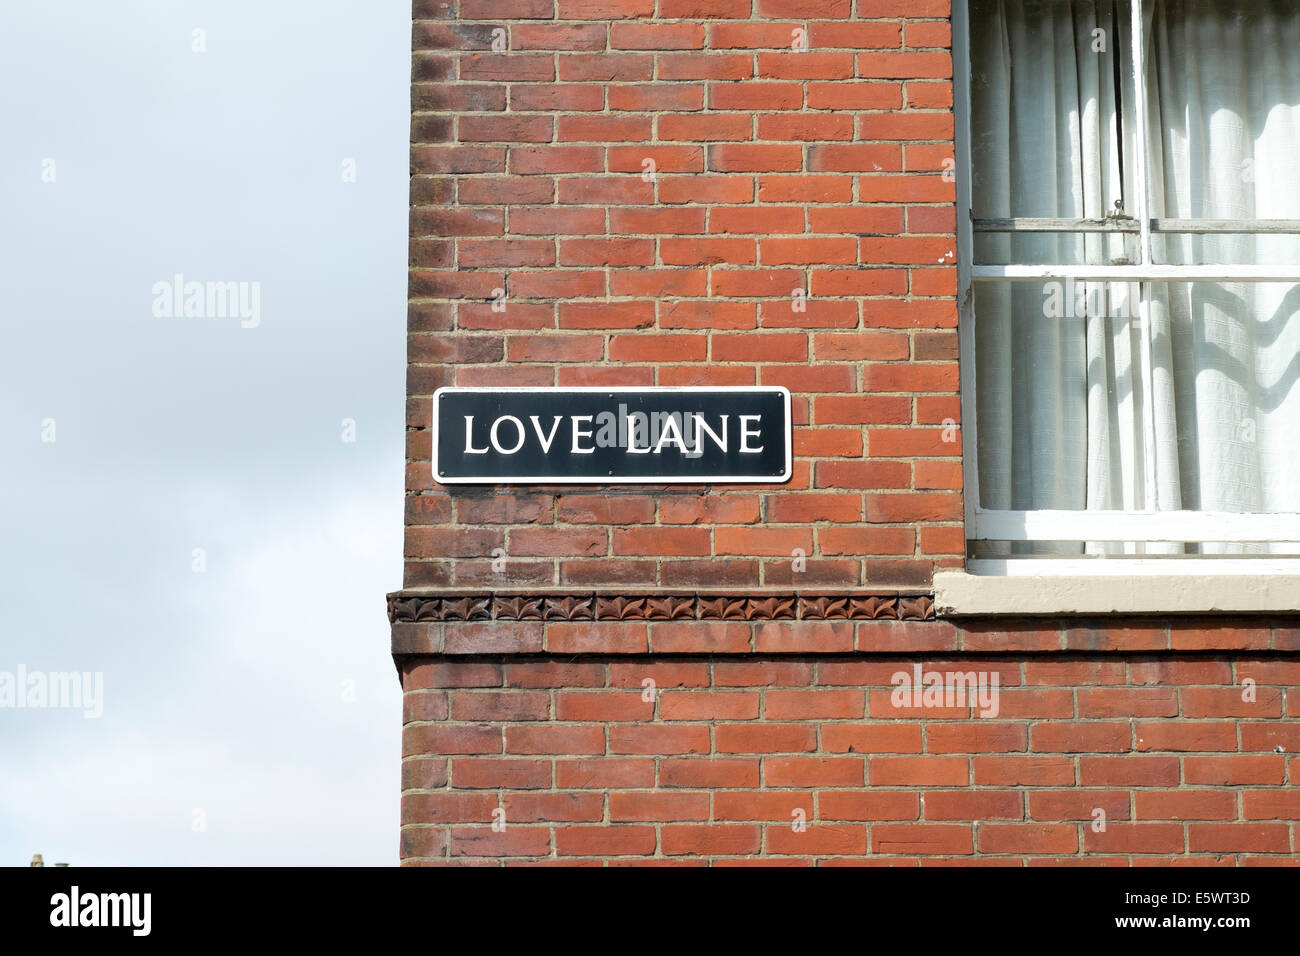 Love Lane Street Name Sign On Side Of Red Brick Building UK